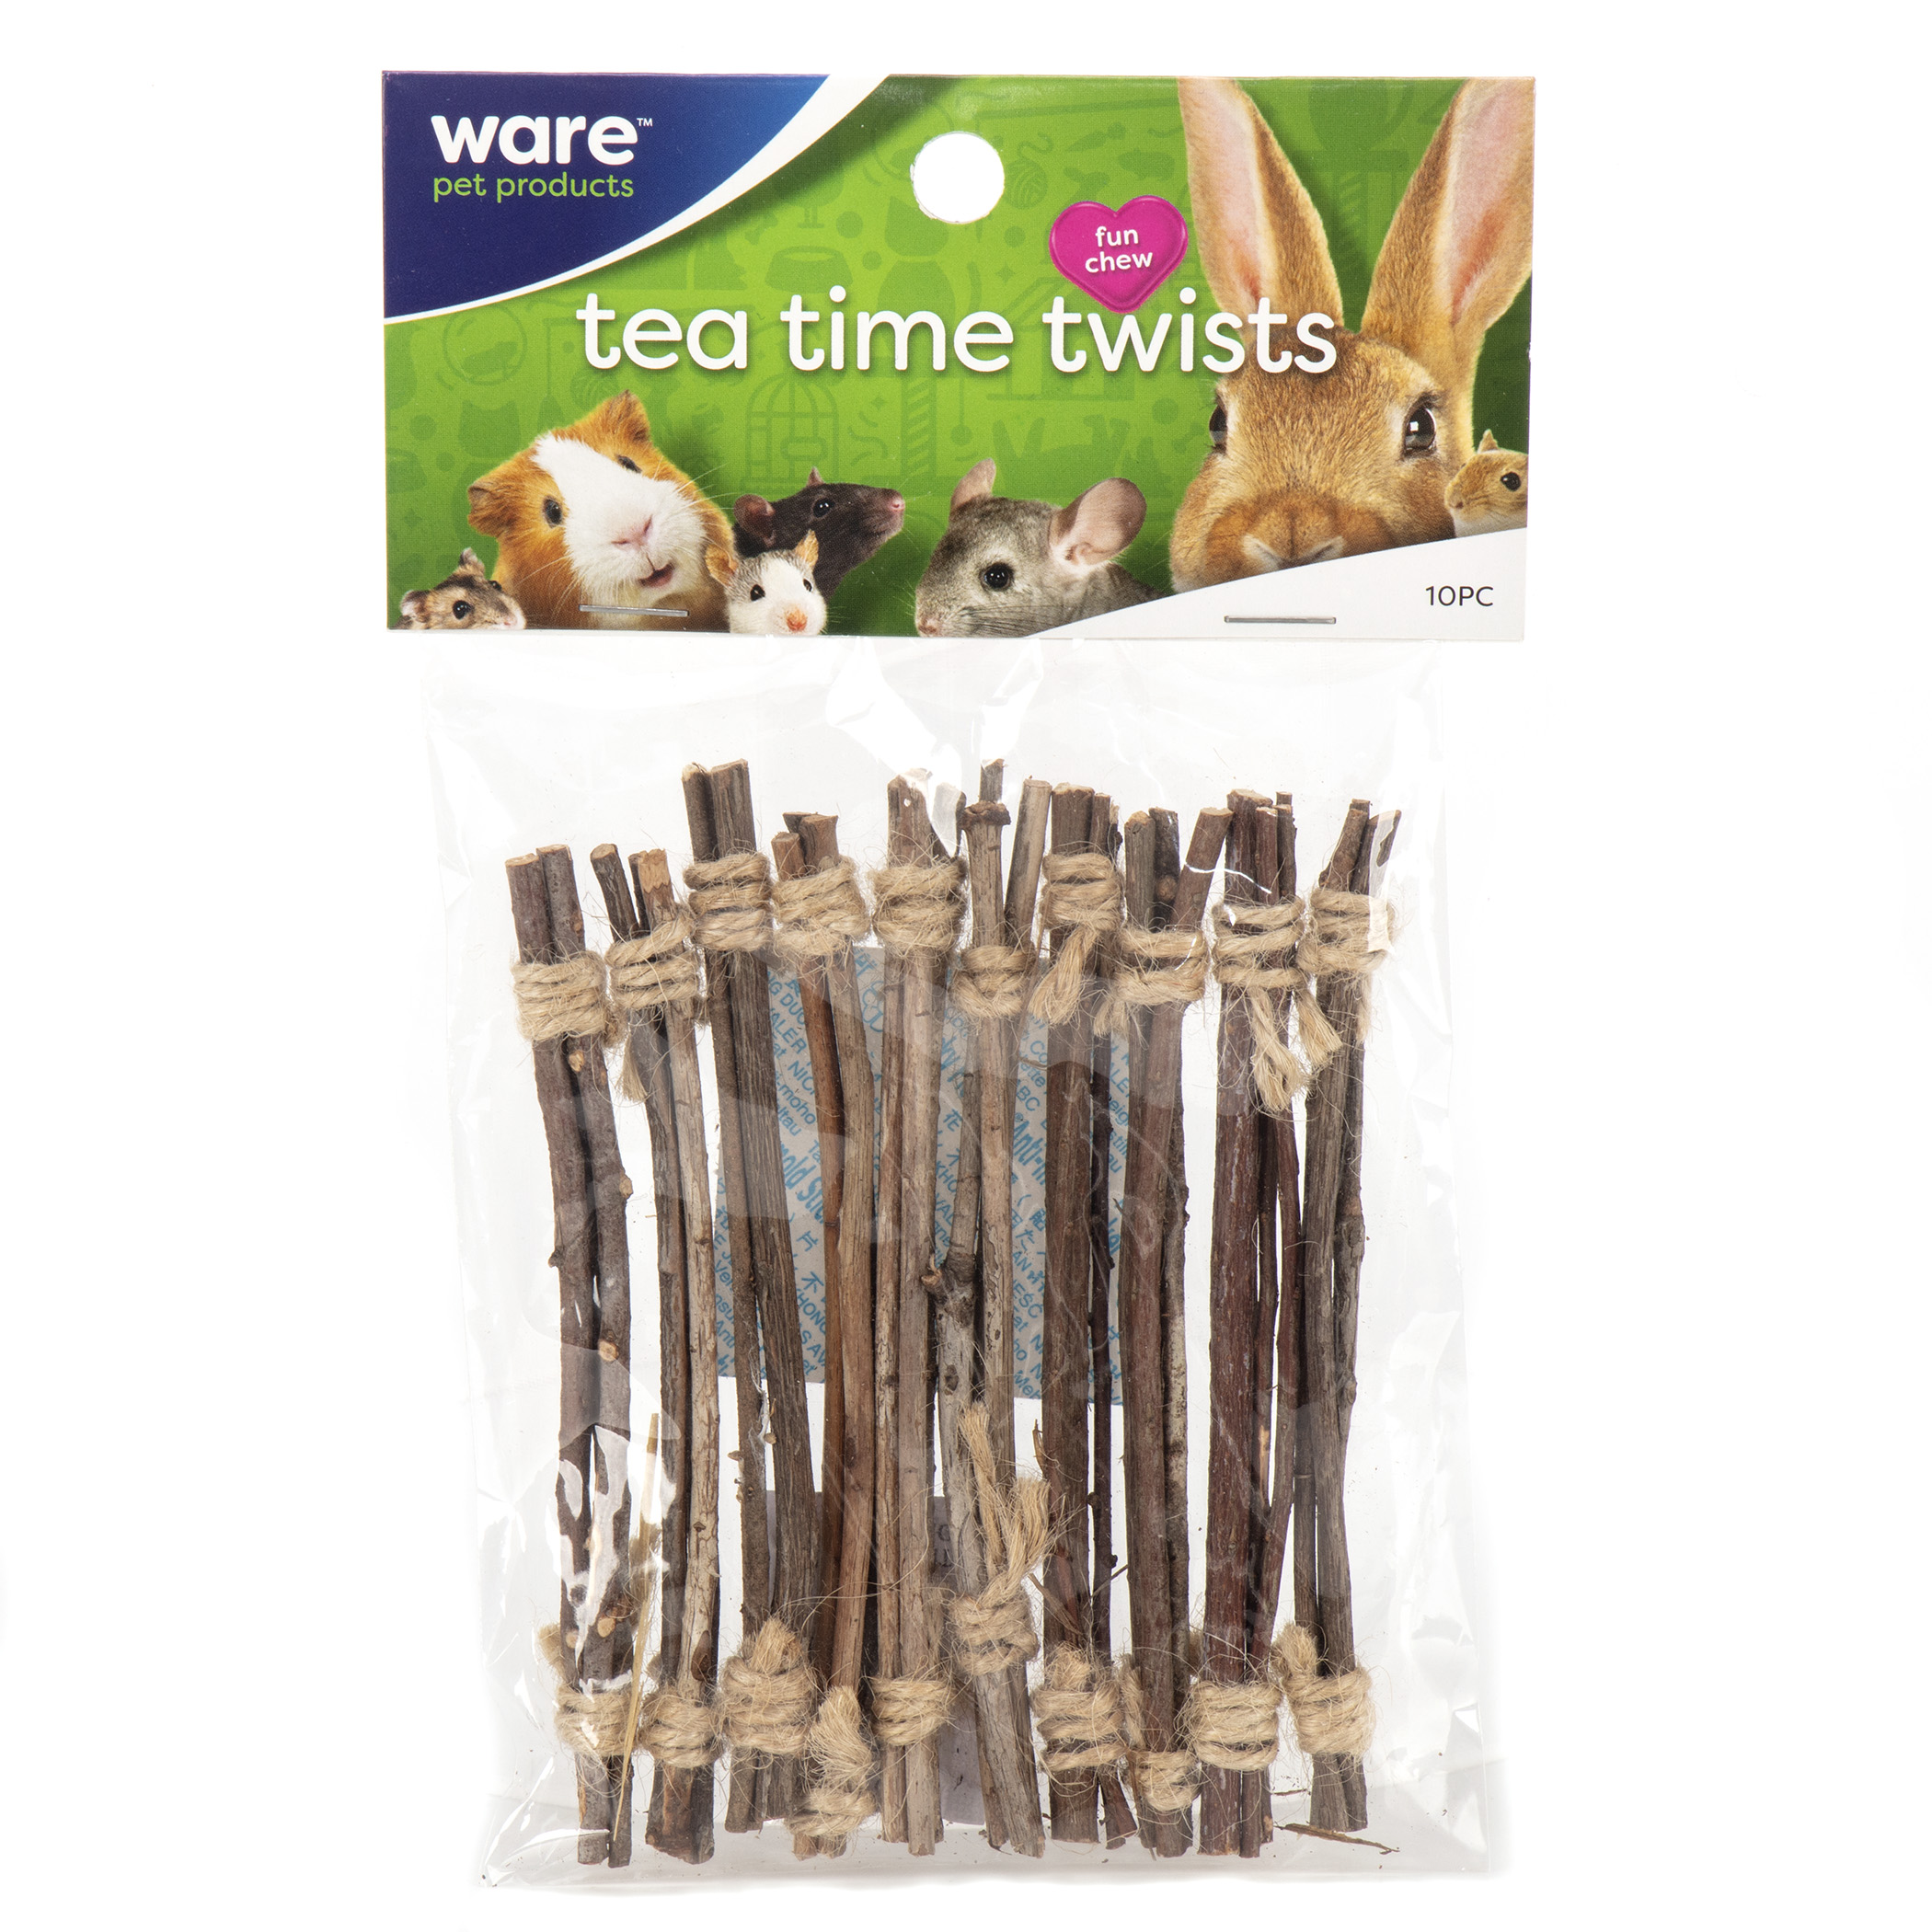 Ware Tea Time Twists, Tooth Trimming Twigs for Small Pets